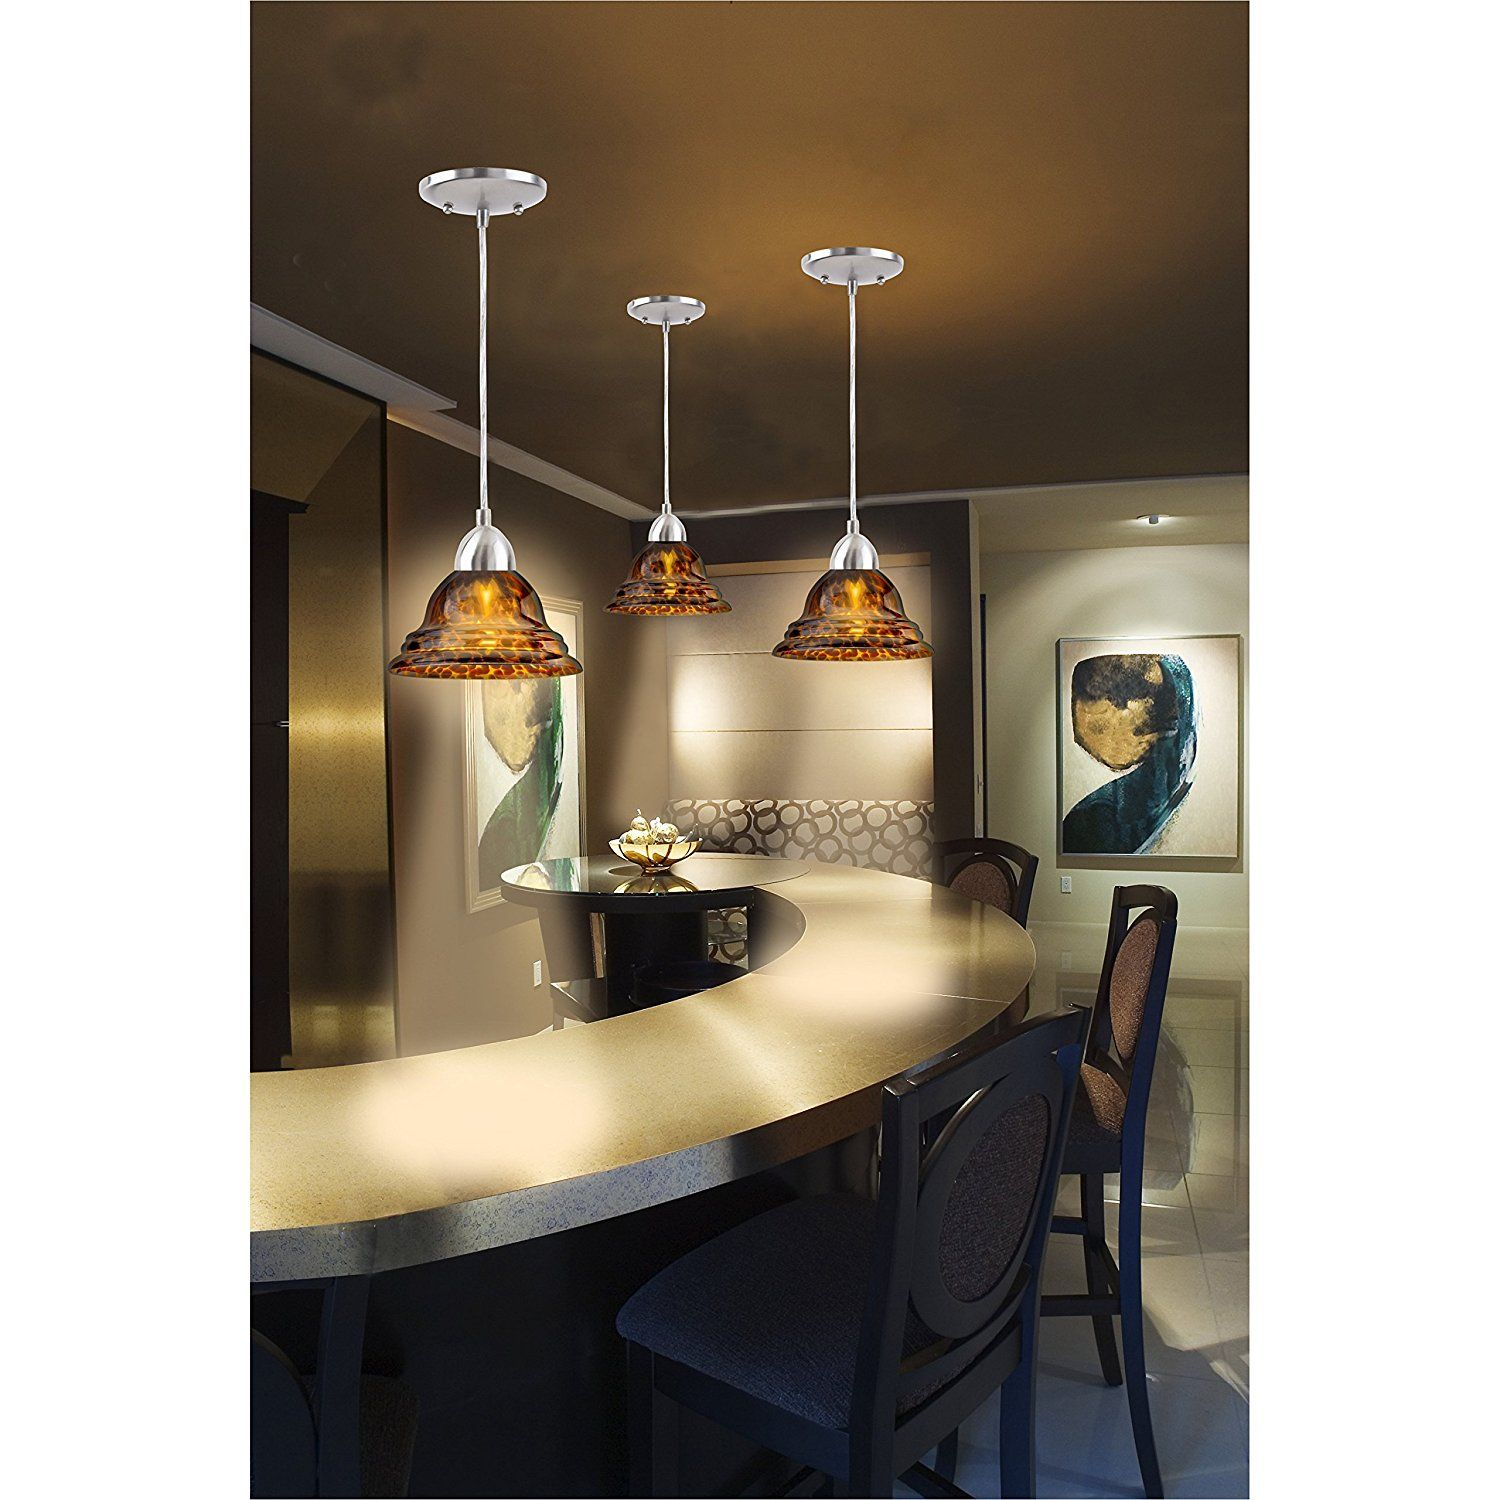 Kitchen pendant lighting over sink and table interior designs arts